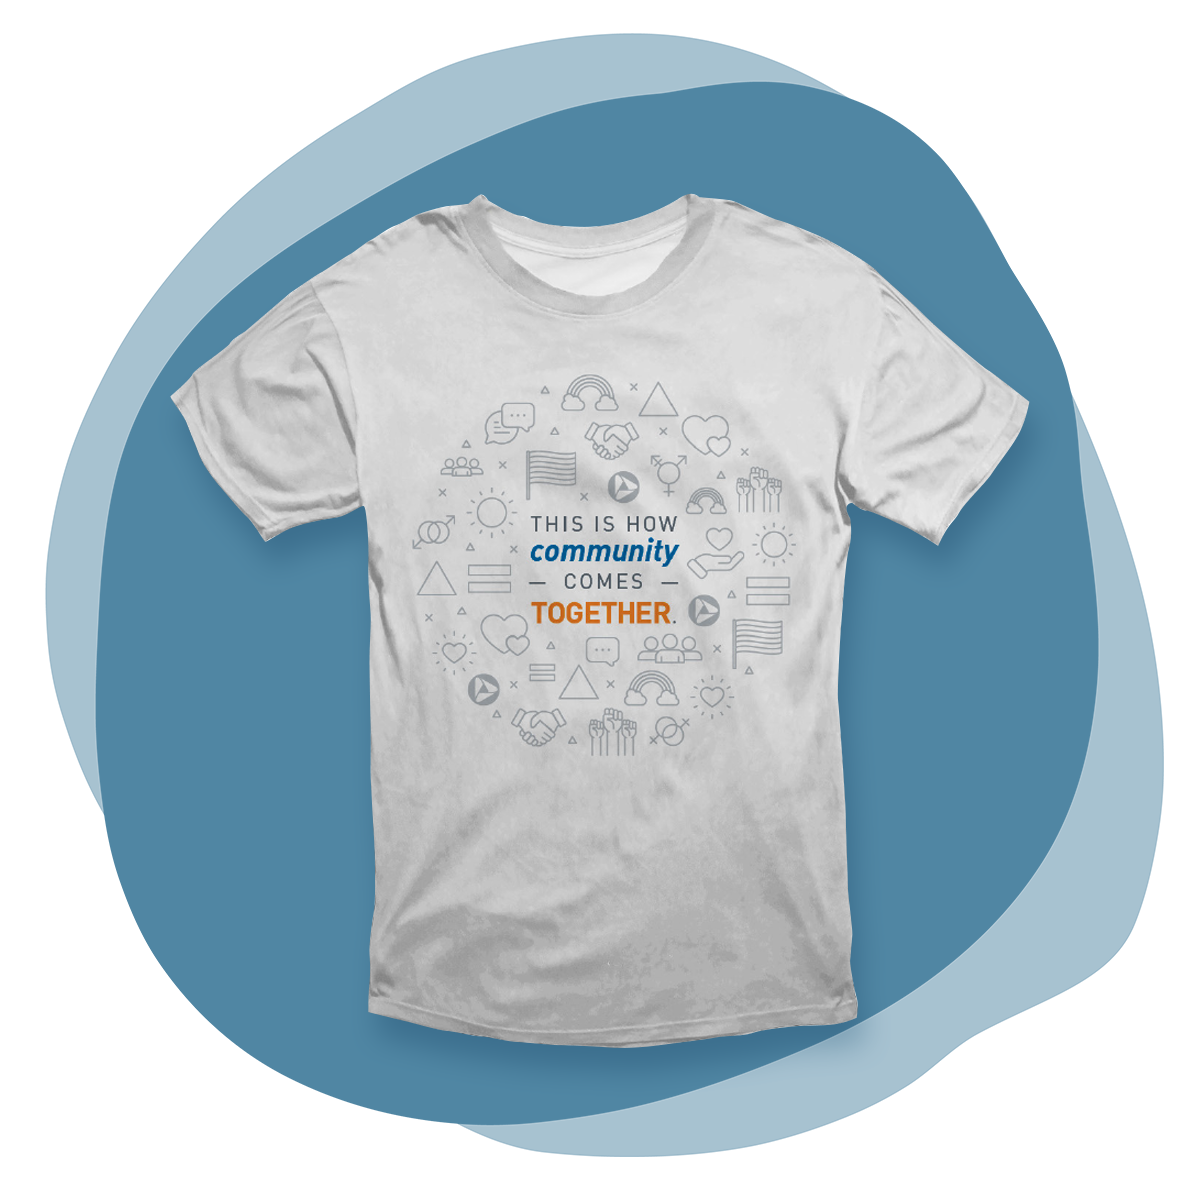 """Organic blue splotch shape with a mockup of a light gray t-shirt overlaid. The shirt features gray, blue, and orange text that reads """"This is how community comes together,"""" with many subtle gray icons in a circle behind the copy. The icons all represent LGBTQ+ history and community - including rainbows, the trans and gay/lesbian symbols, triangles, and more - as well as the PNC logo."""